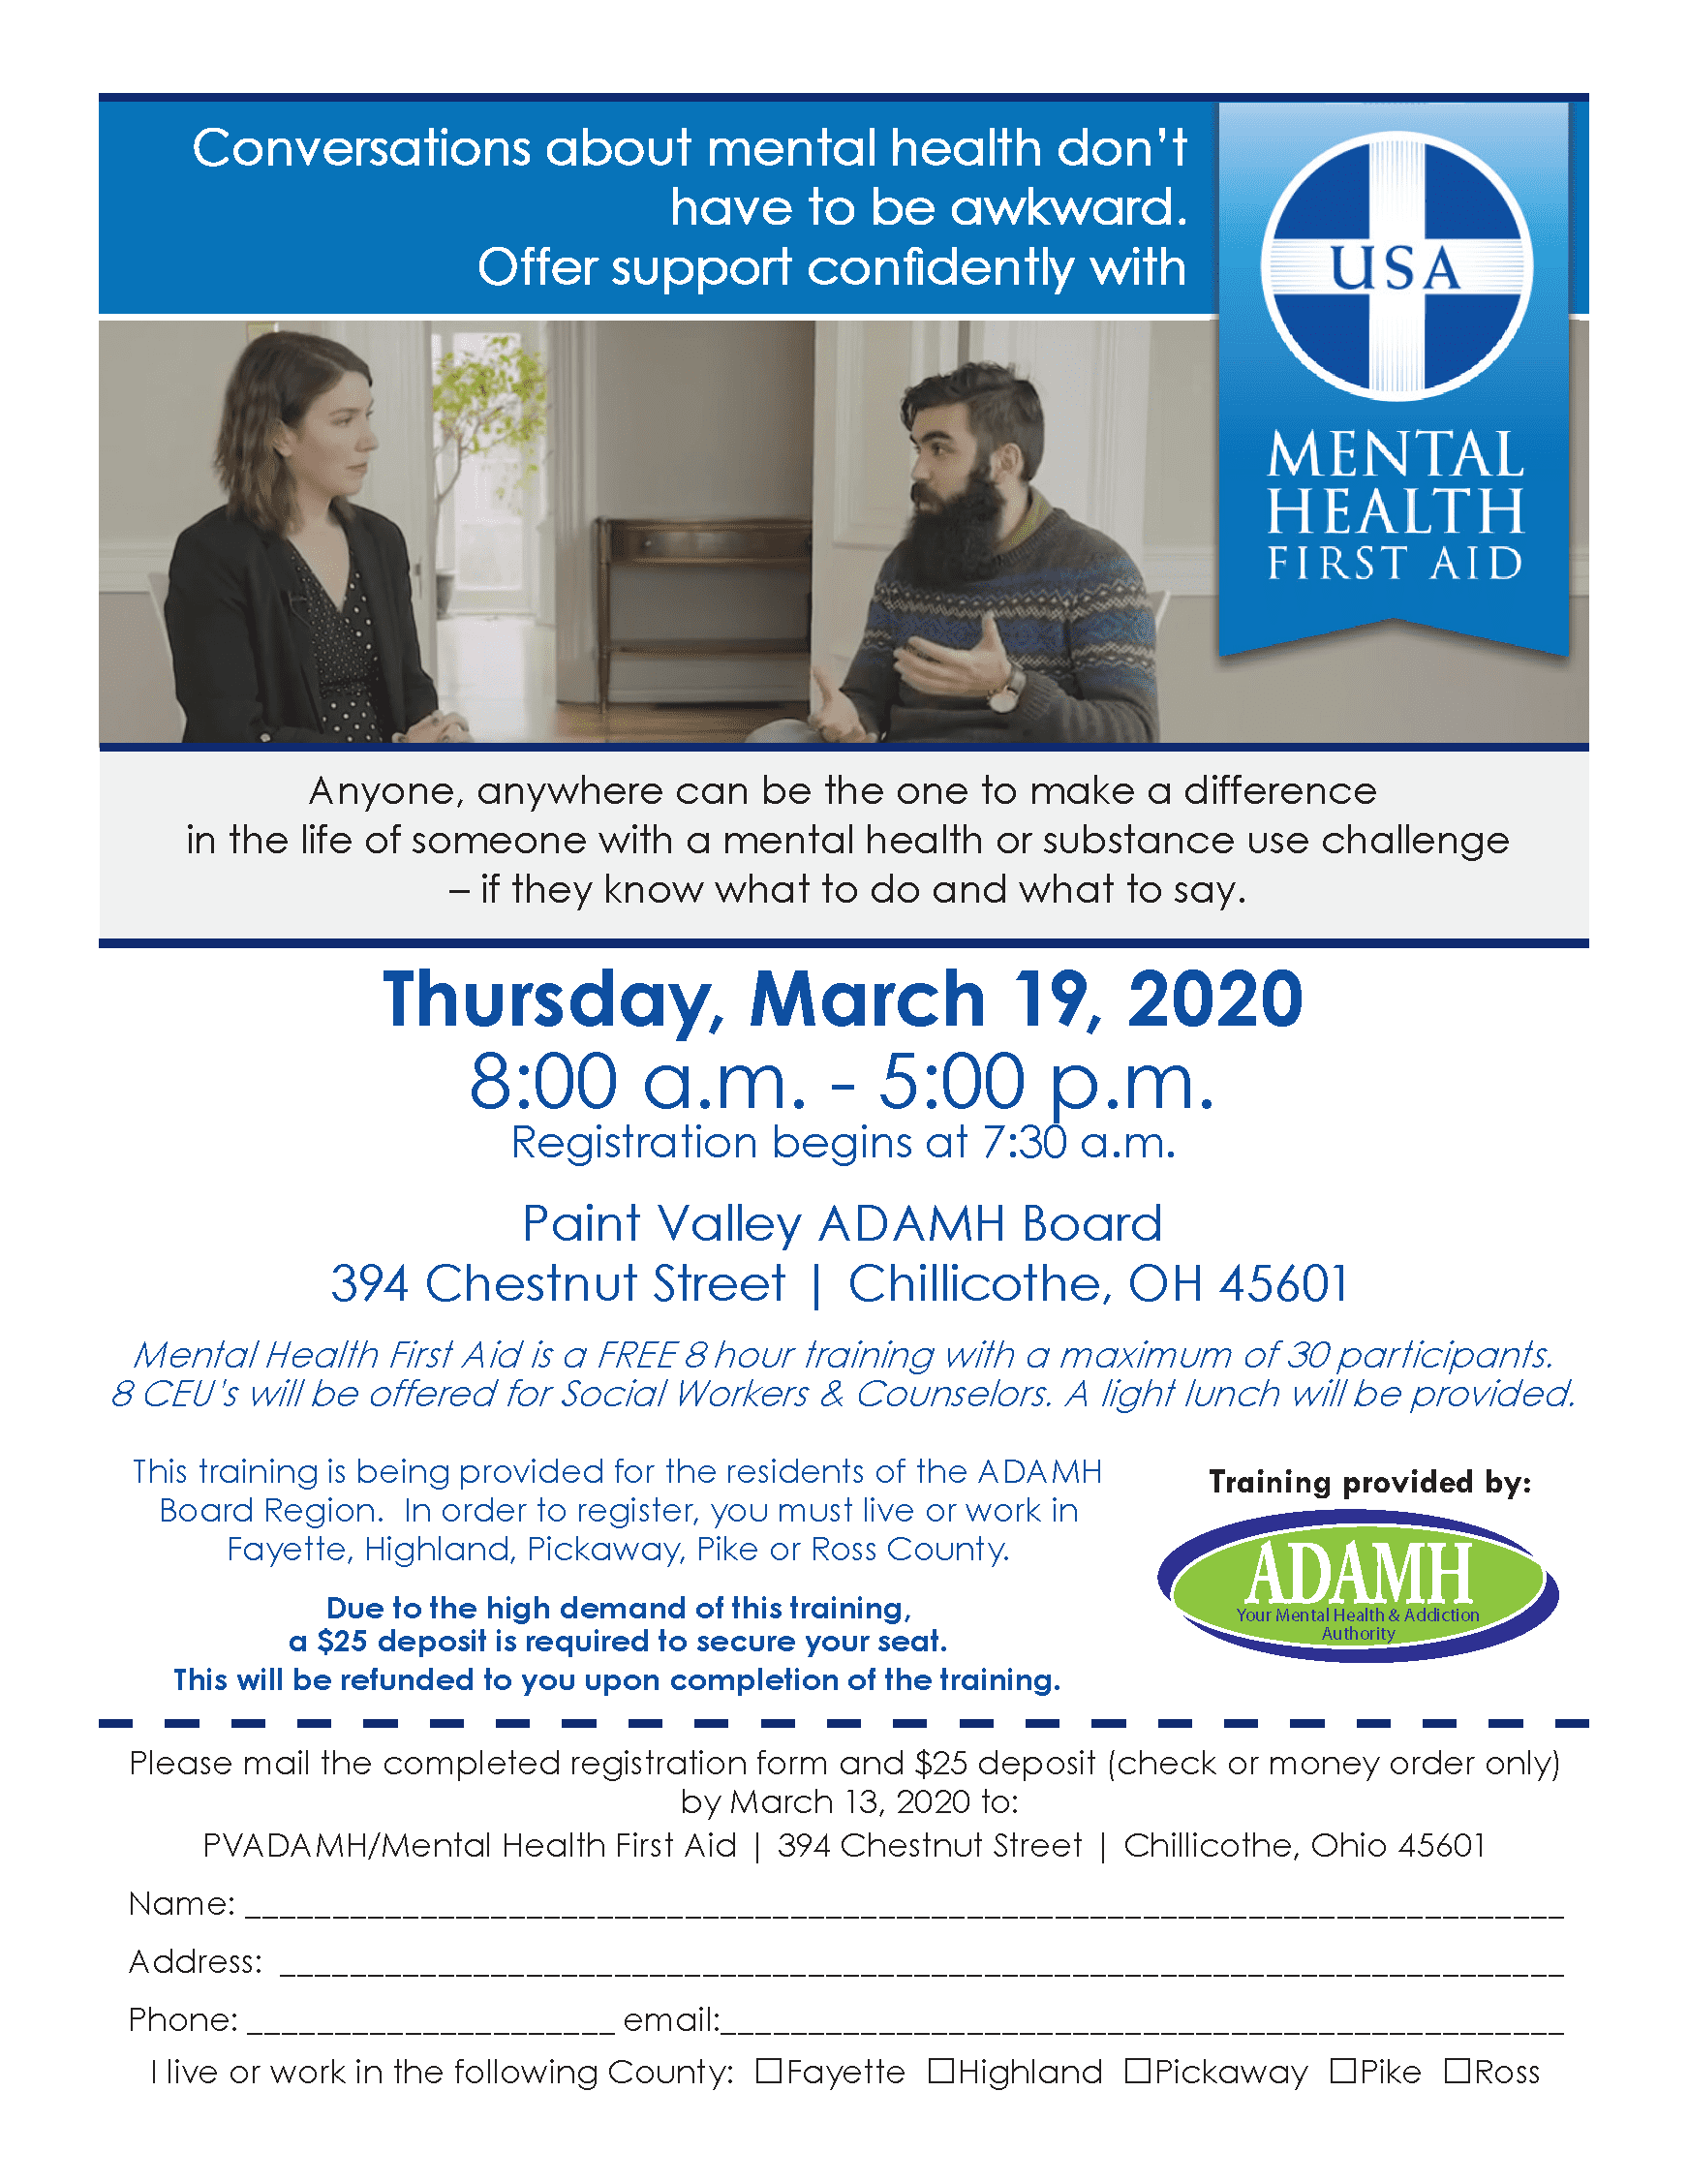 031920 Mental Health First Aid Ross Co